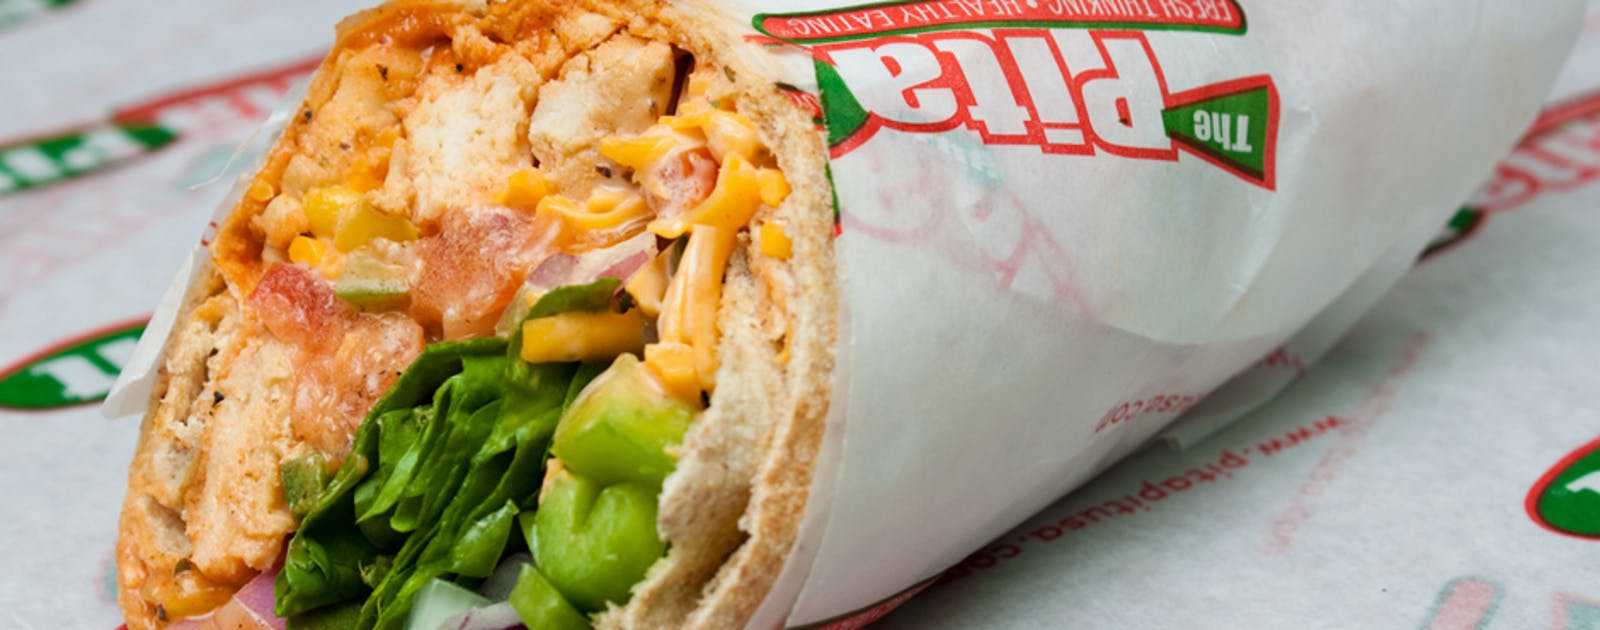 Pita Pit - Manly - Food Delivery Shop